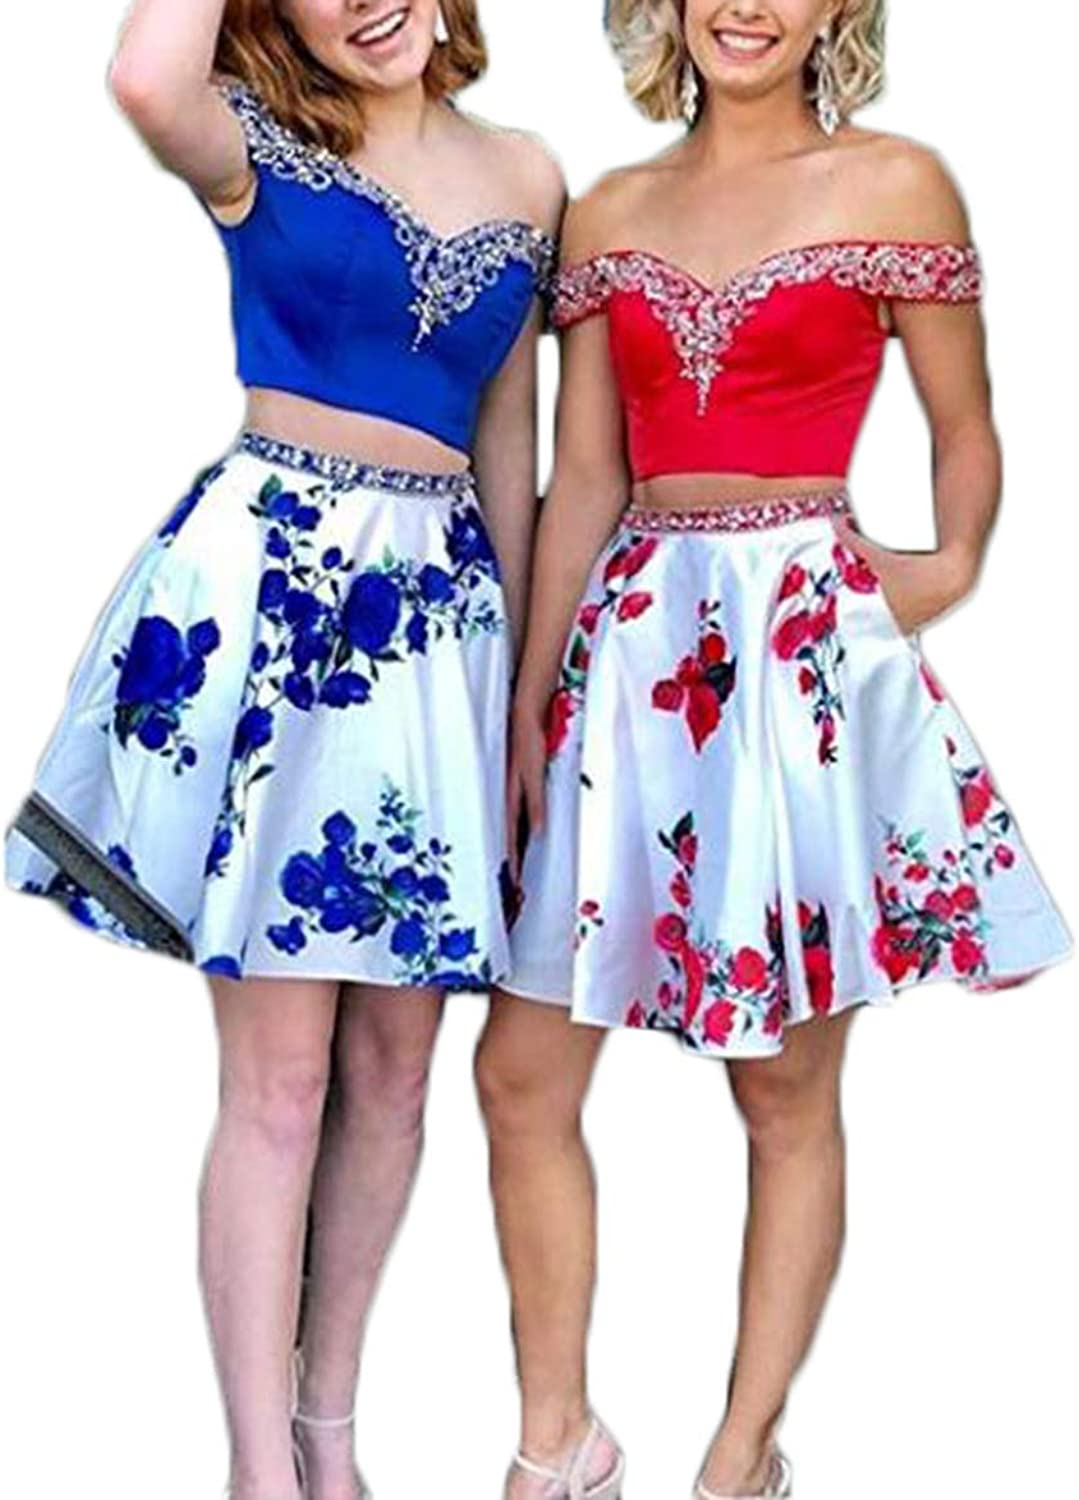 Alilith.Z Beaded 2 Piece Homecoming Dresses 2018 Short Floral Off Shoulder Prom Dresses Party Gowns with Pockets